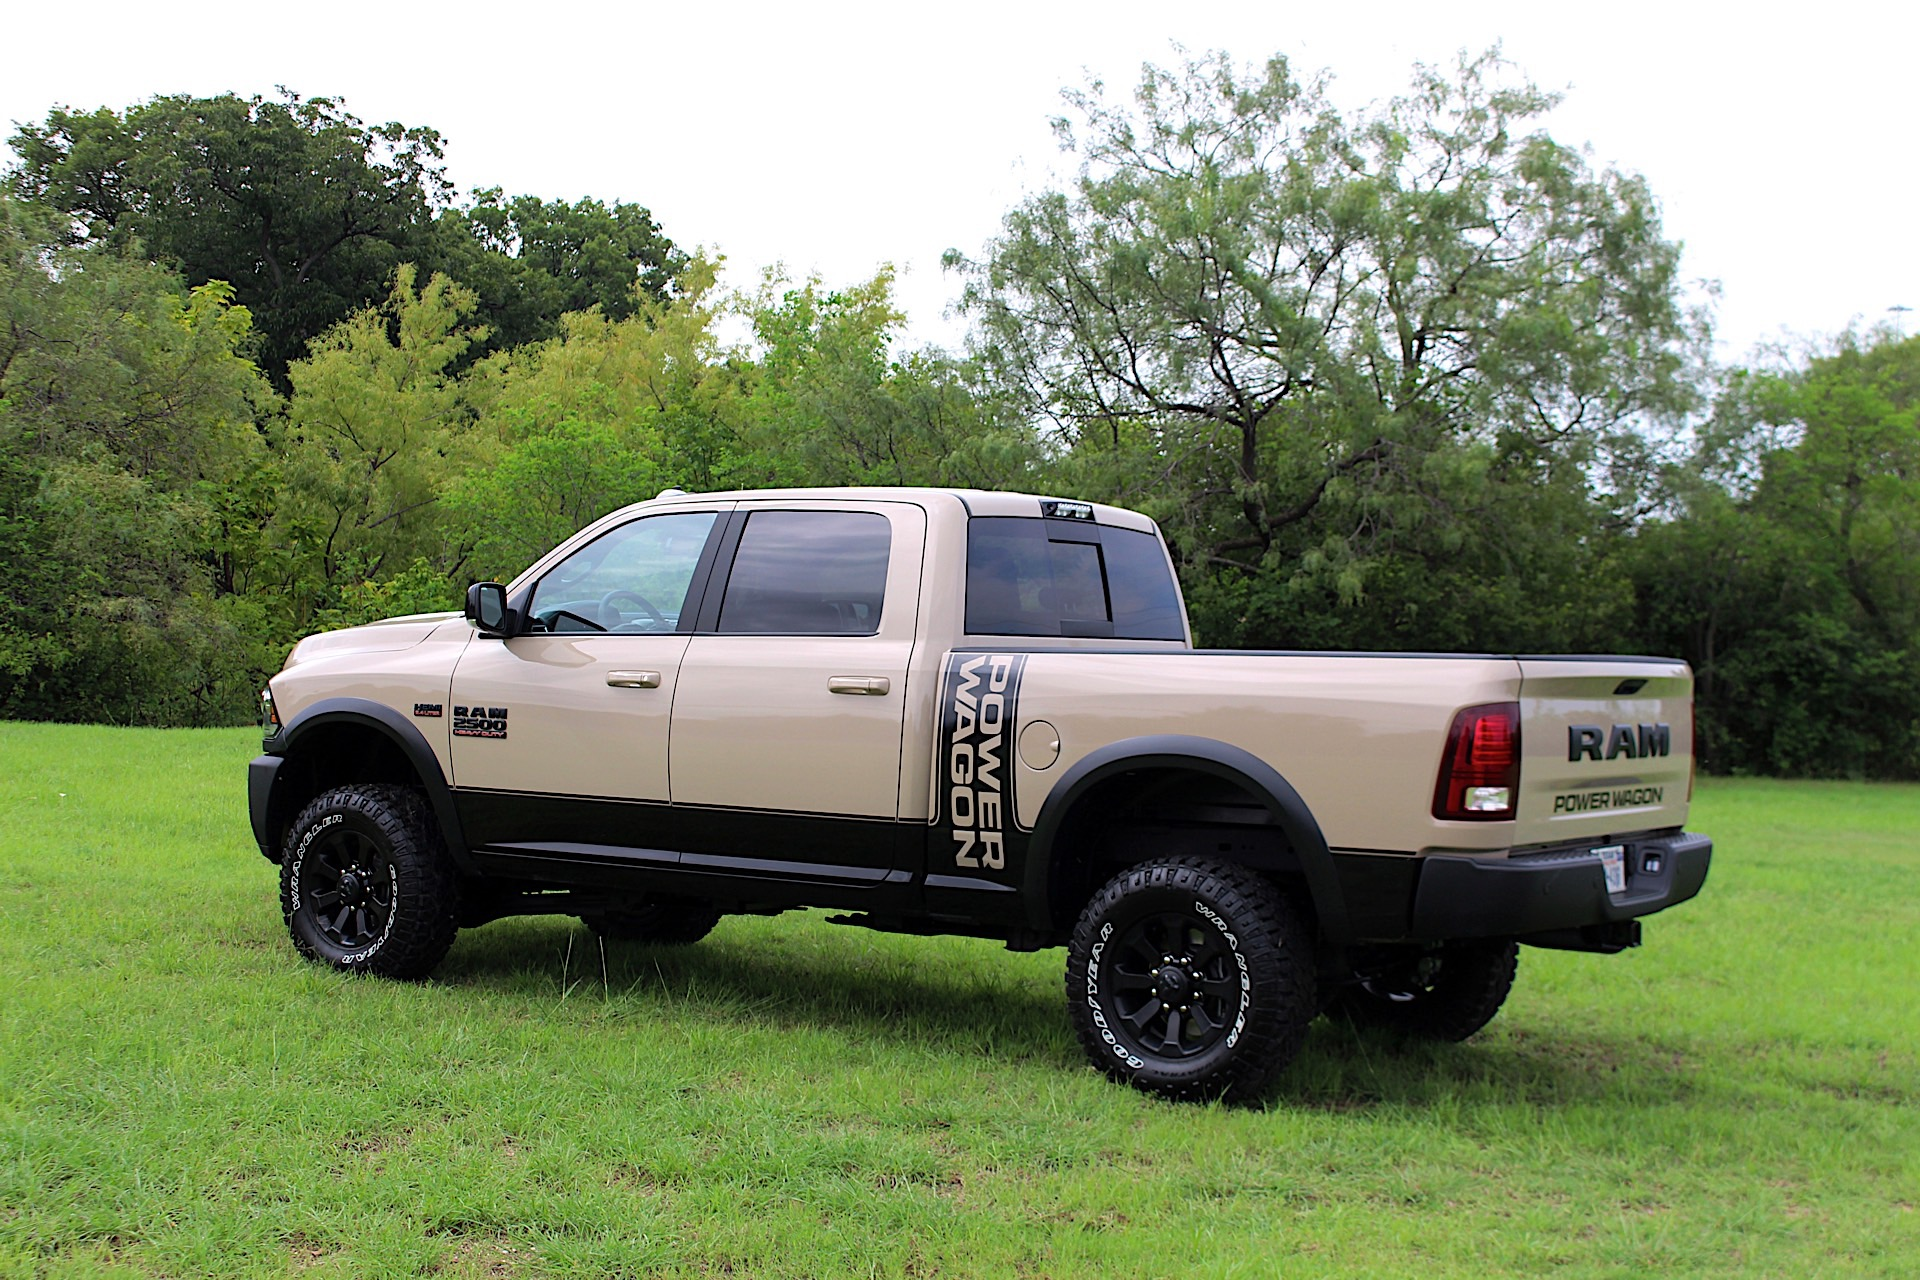 the ram power wagon mojave sand limited edition is ready